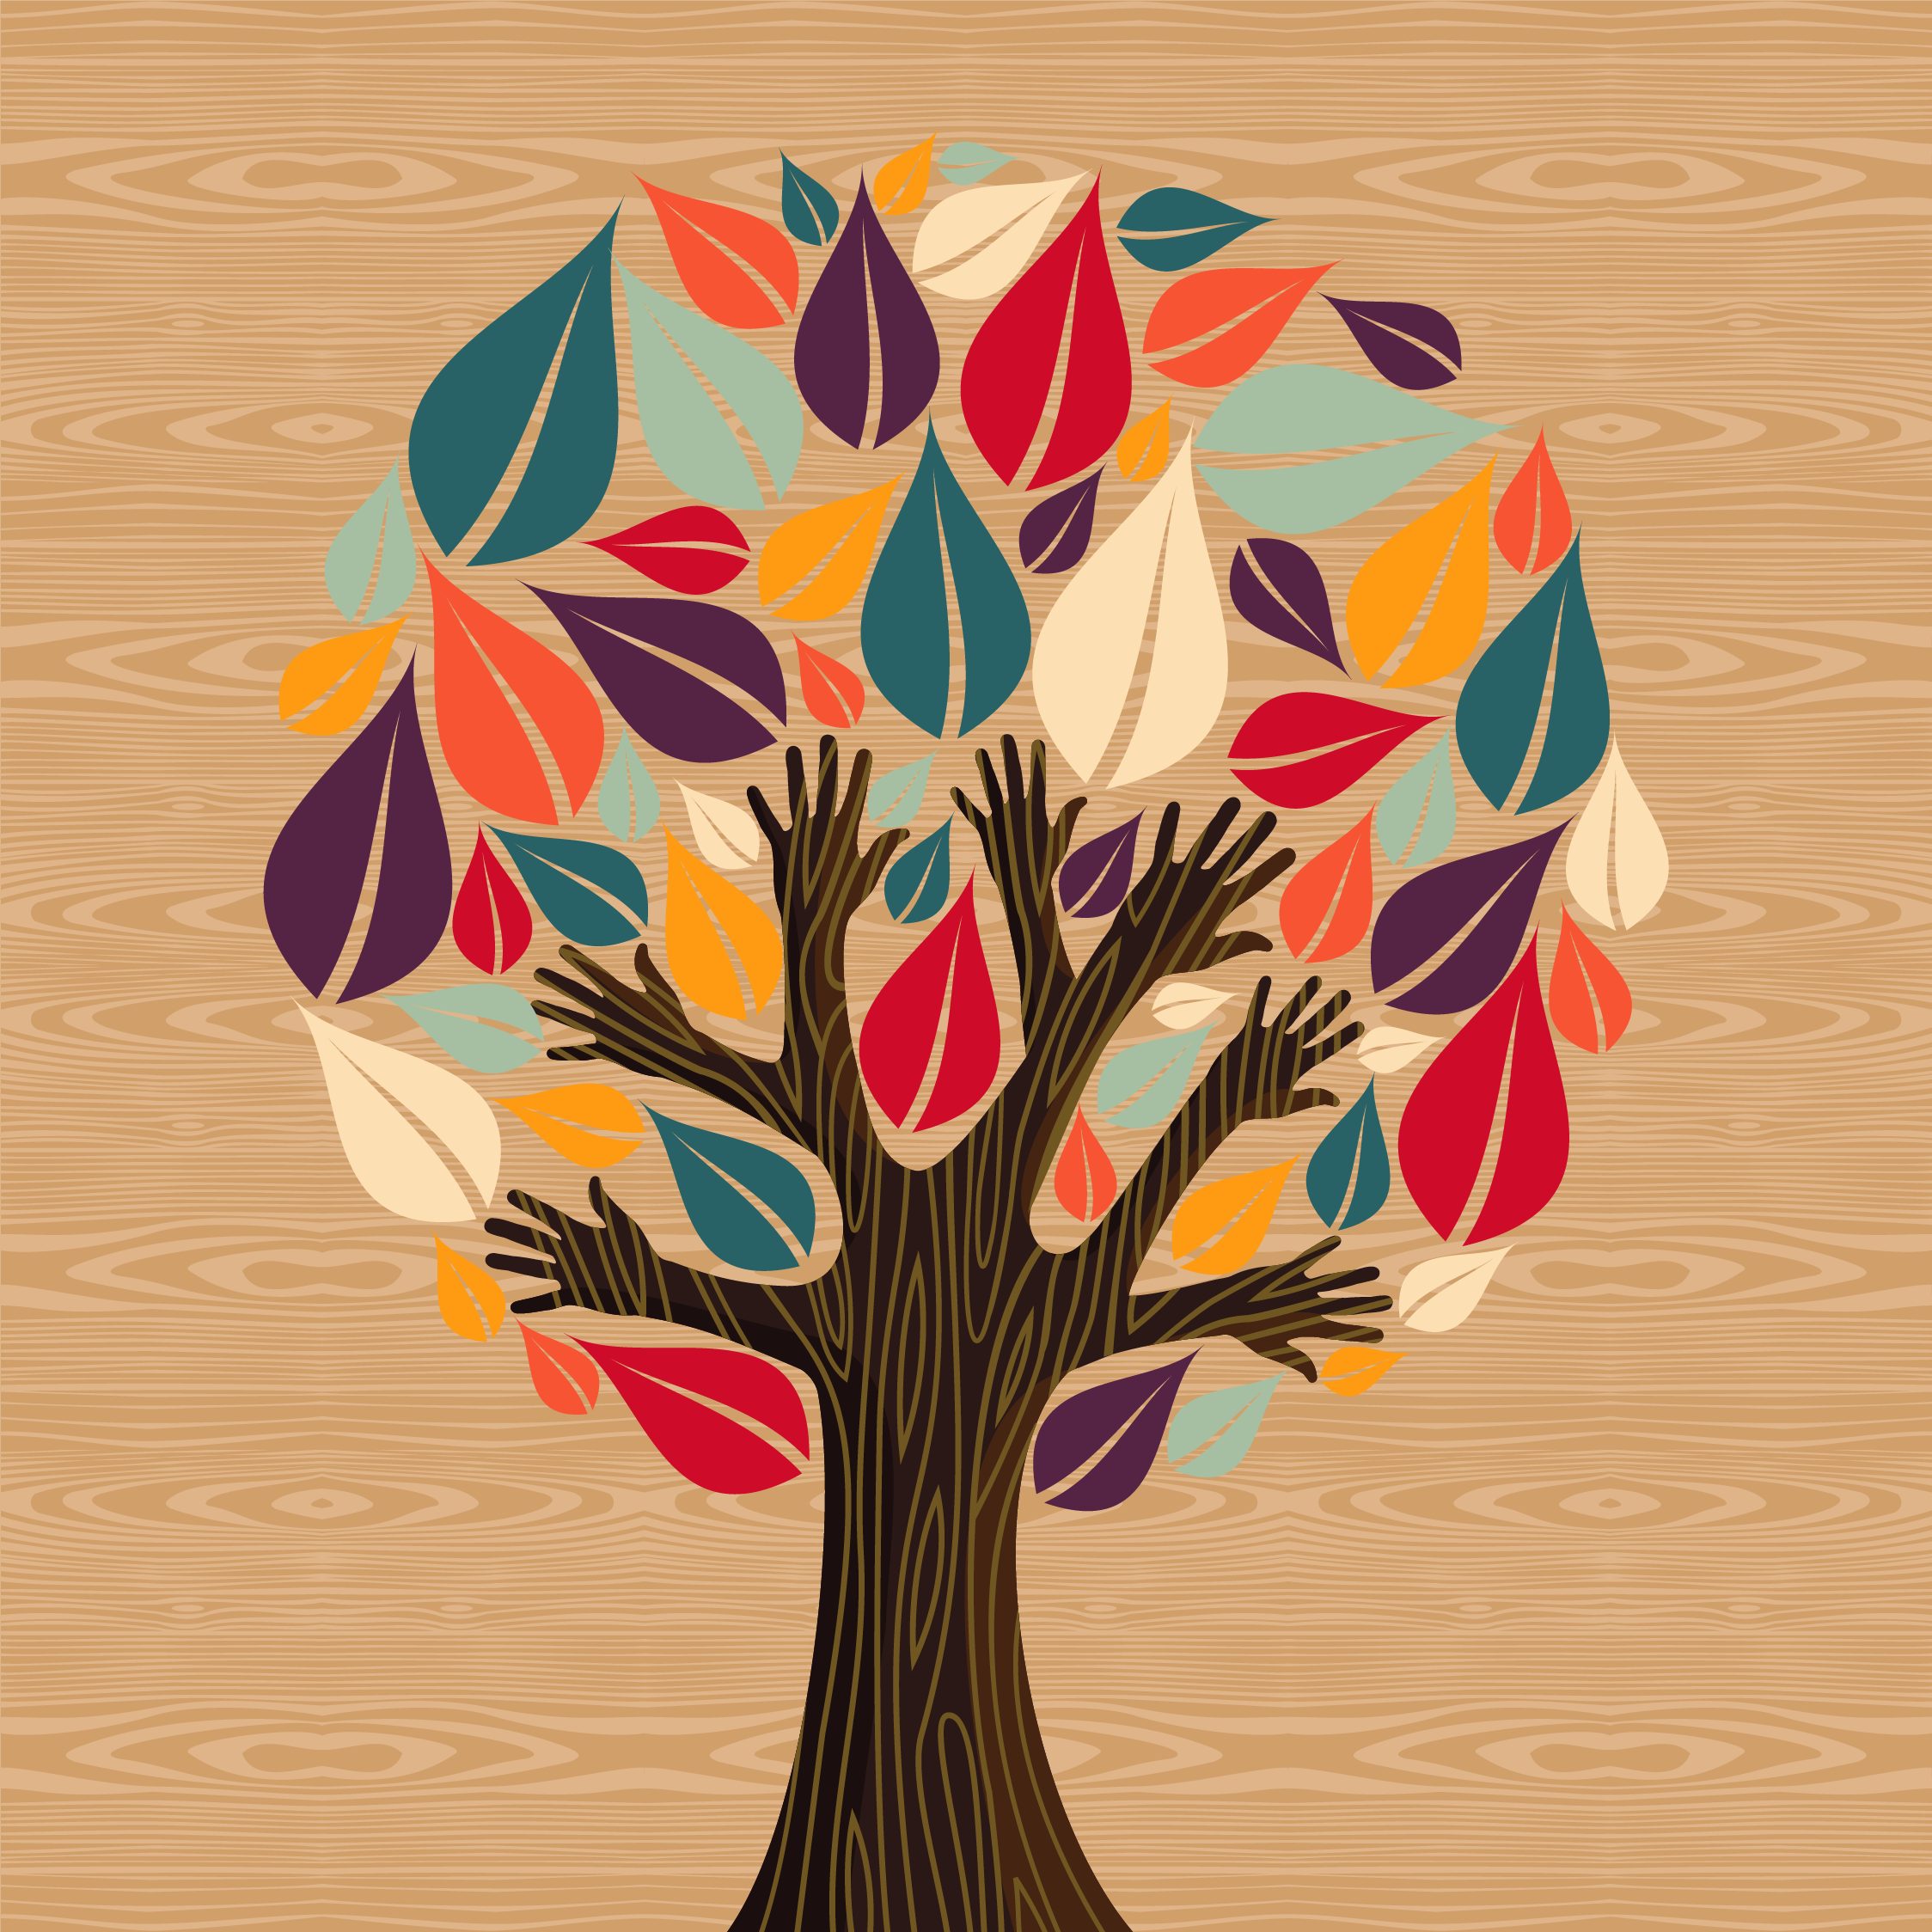 An illustration of a tree with large red, purple, and teal leaves and a dark brown trunk with human hands instead of branches